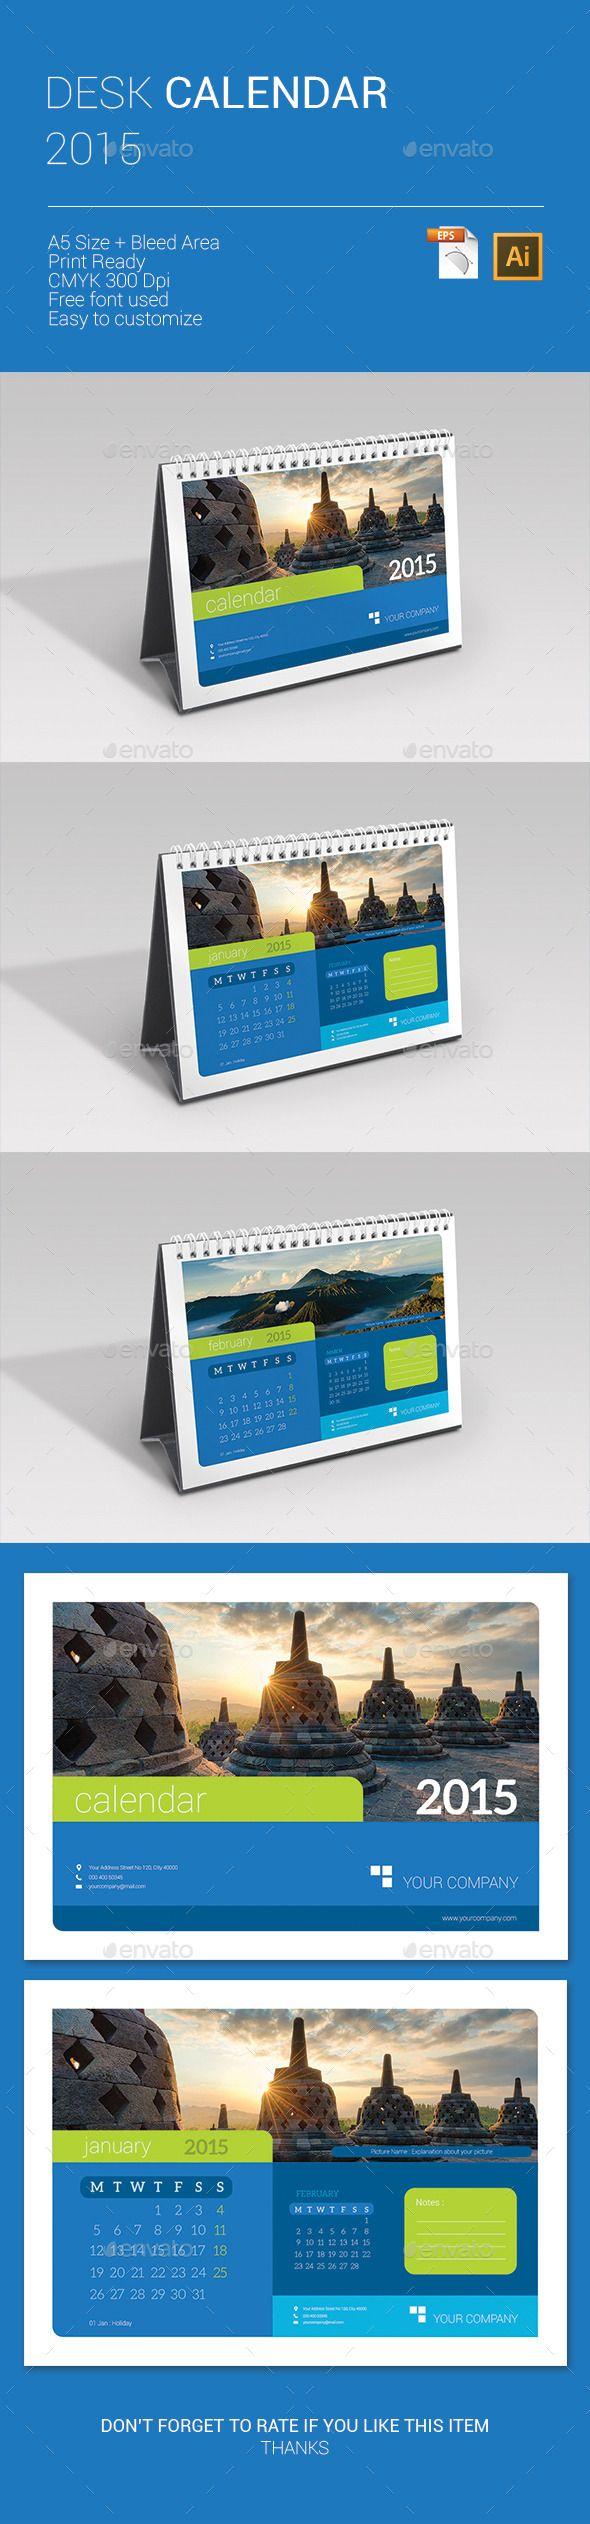 Desk Calendar 2015 Template | Buy and Download: http://graphicriver.net/item/desk-calendar-2015/9670840?ref=ksioks